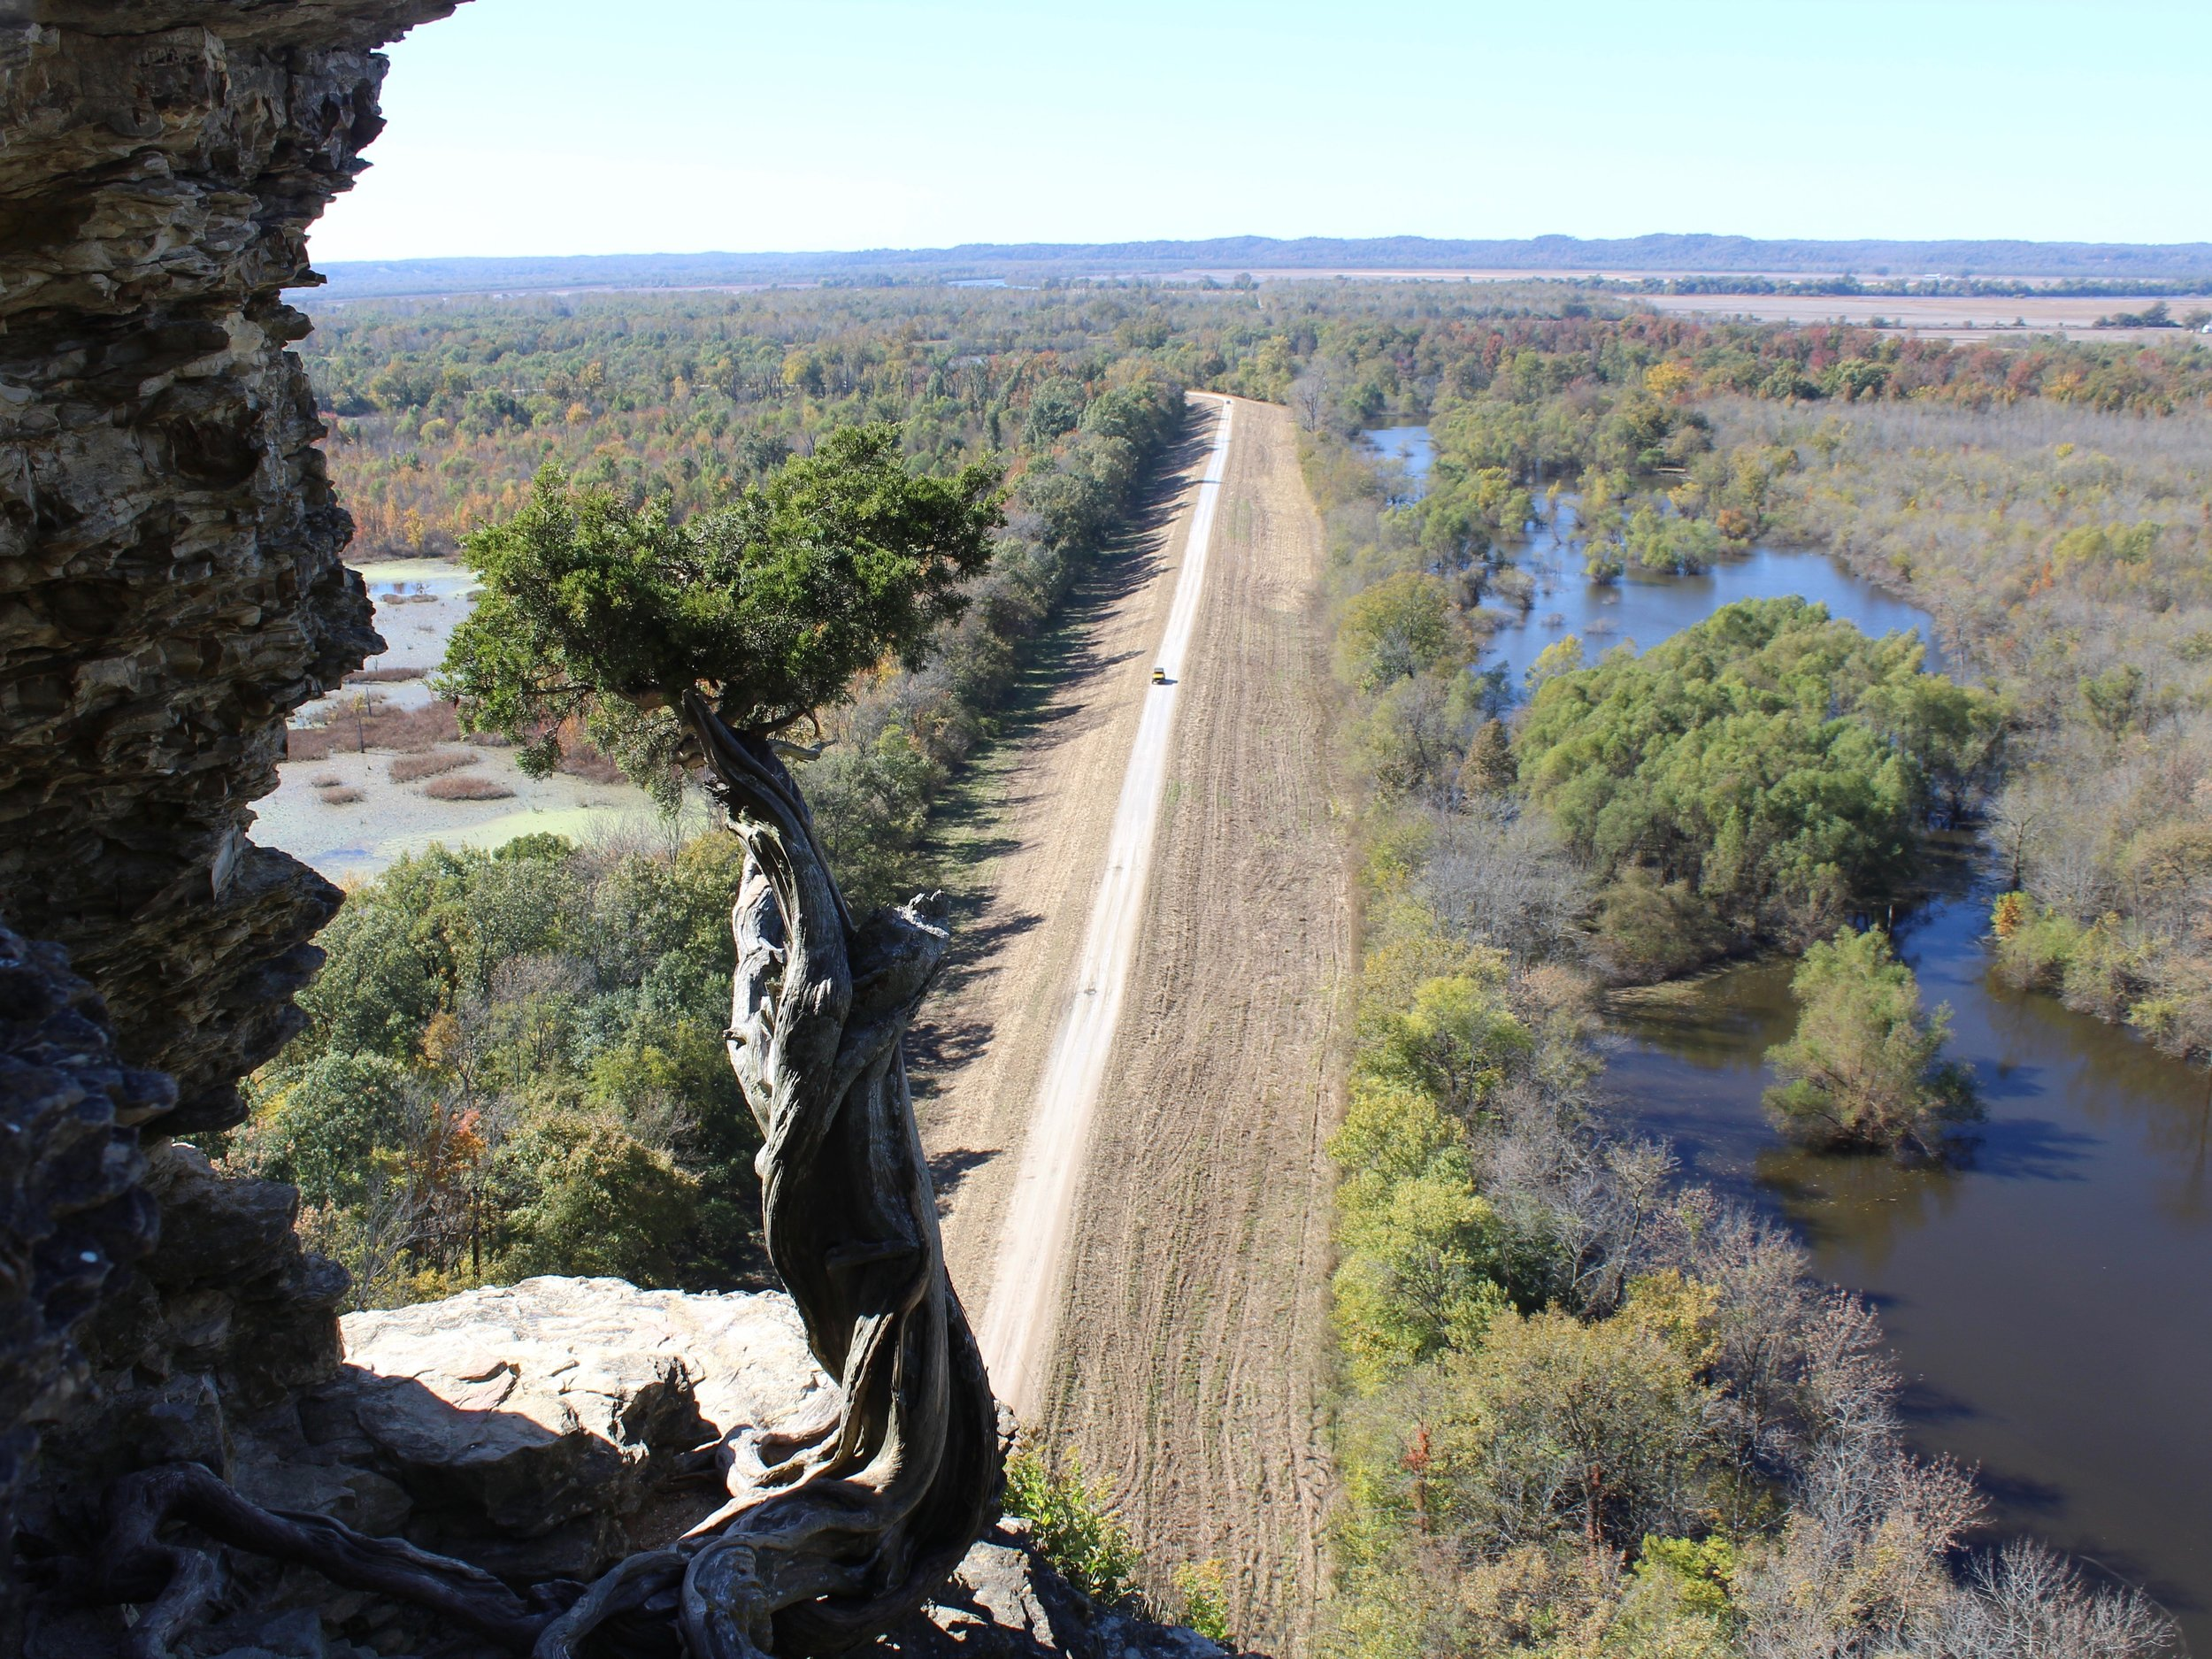 Inspiration Point, looking down on the Big Muddy River, is toward the western end of the River to River Trail. (One Illinois/Ted Cox)